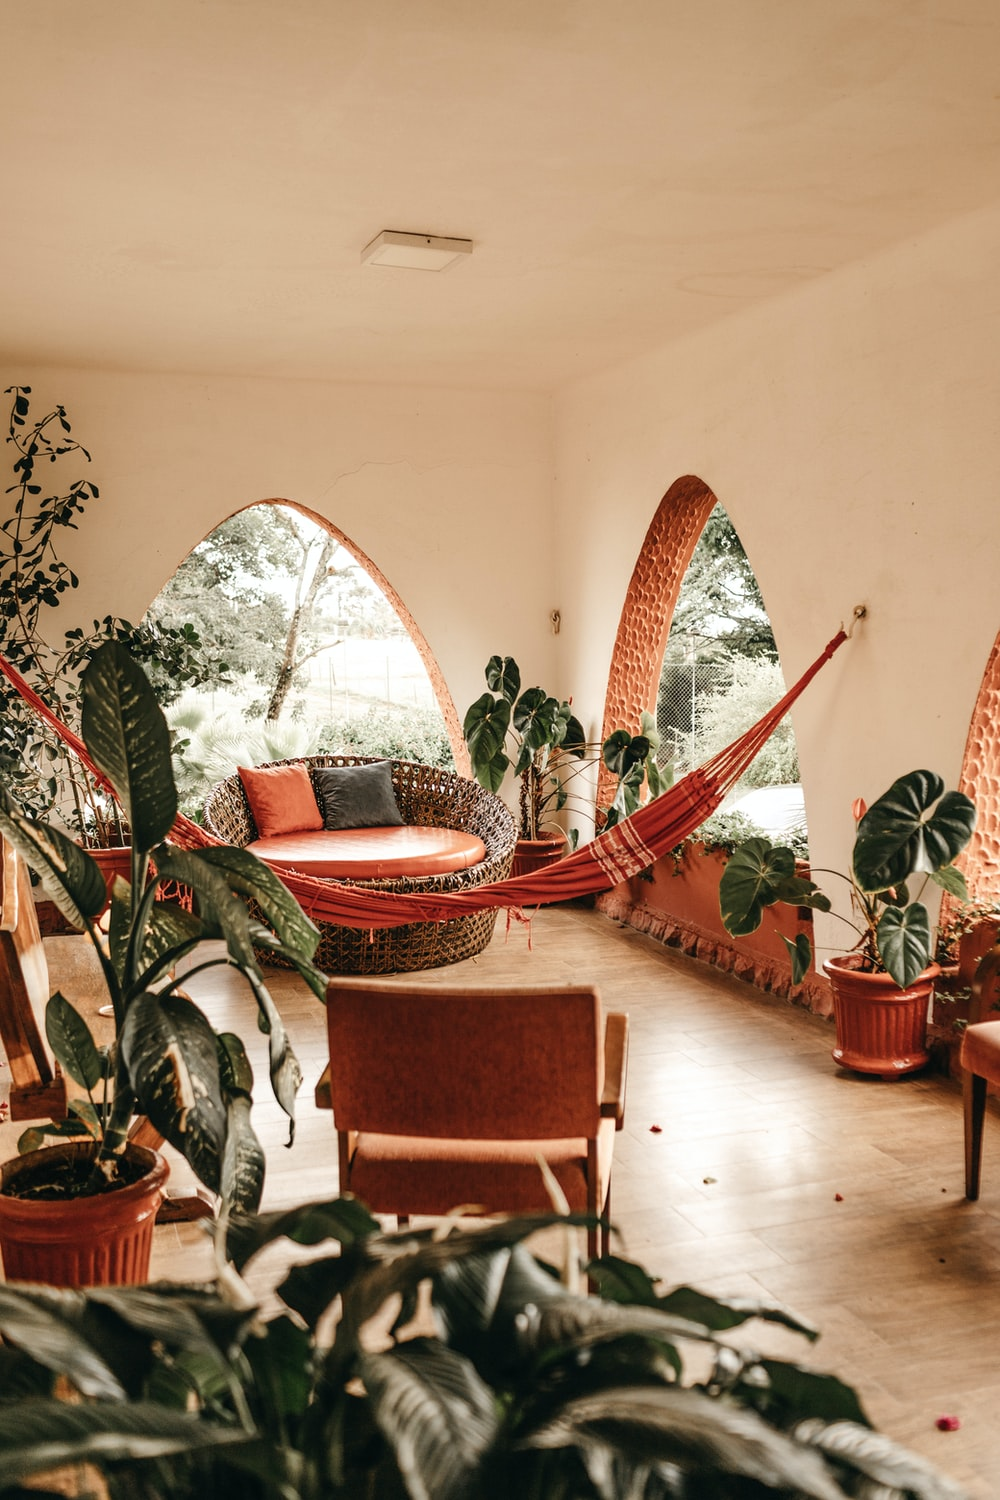 red hammock hanging in the living room